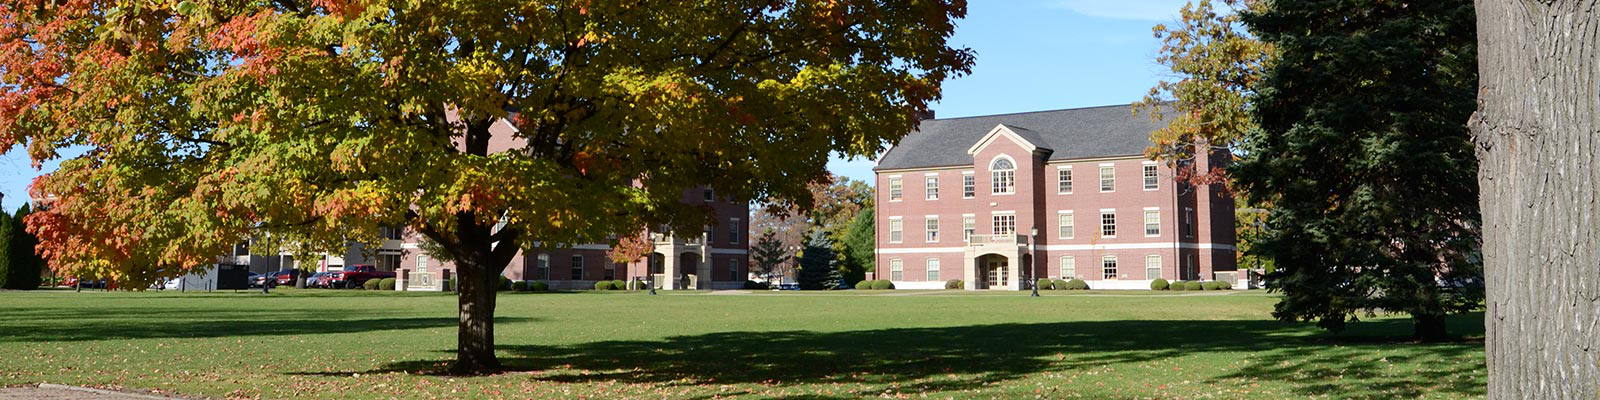 East Quad on the 安科 Campus